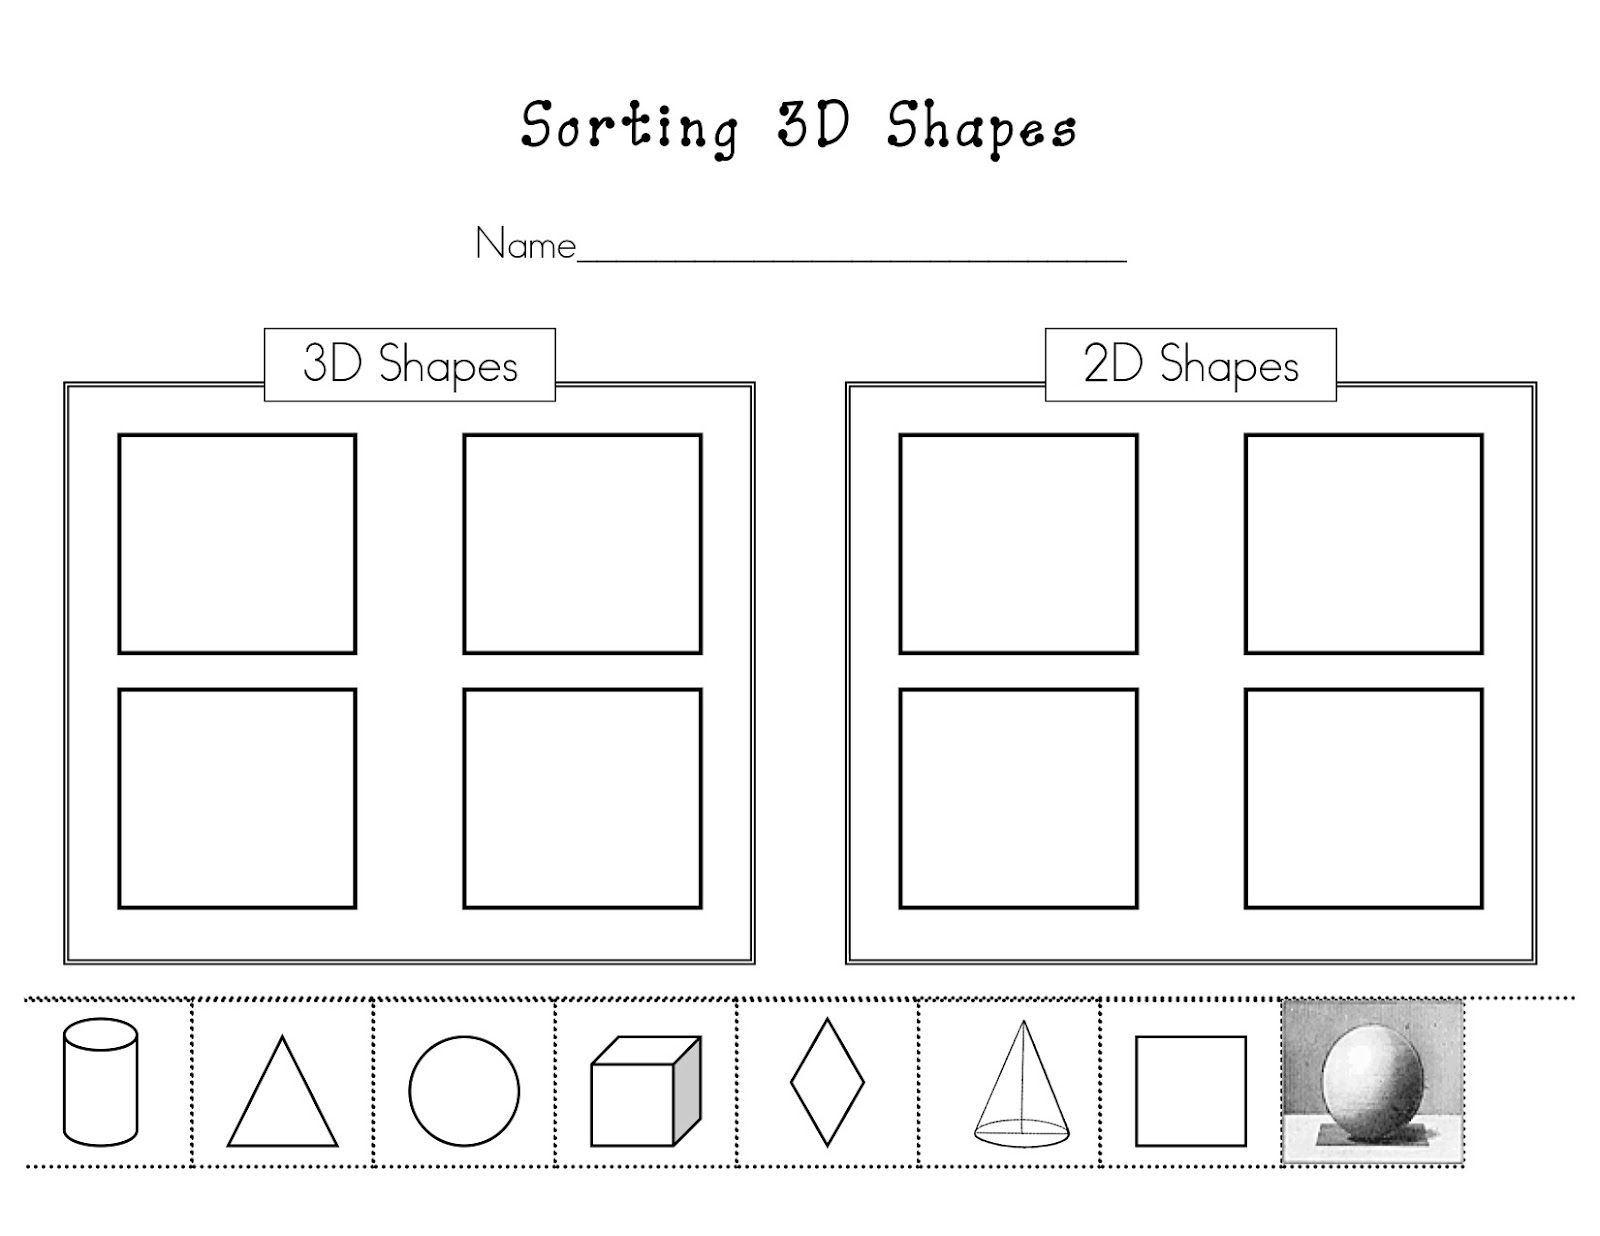 Worksheet 3d Shapes Worksheets For Kindergarten 1000 images about shapes on pinterest kindergarten shape songs and emergent readers